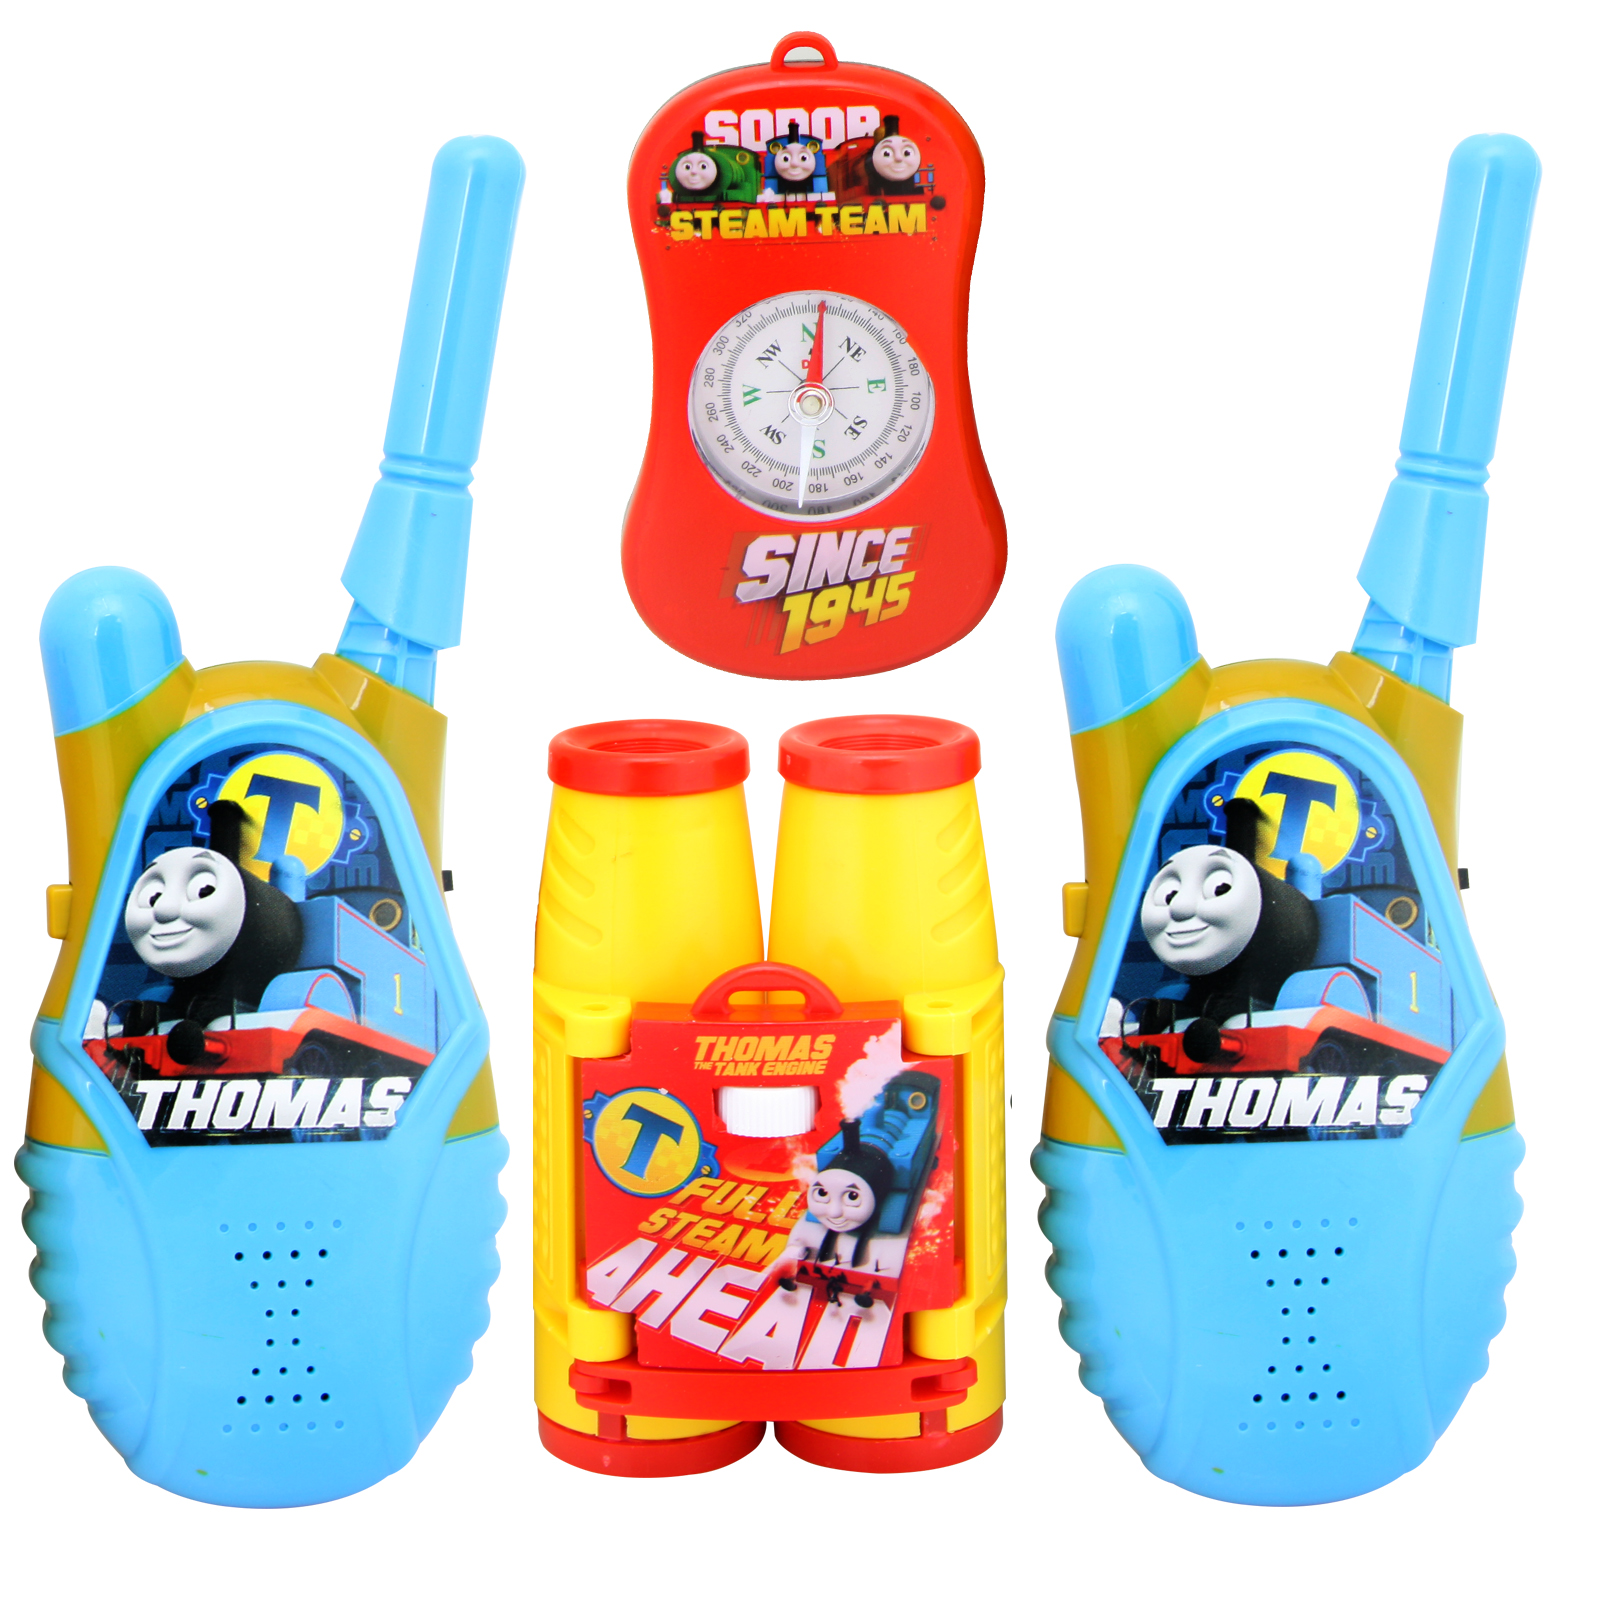 Thomas and Friends 4-Piece Adventure Kit includes One Pair of Walkie Talkies, Binoculars and Compass